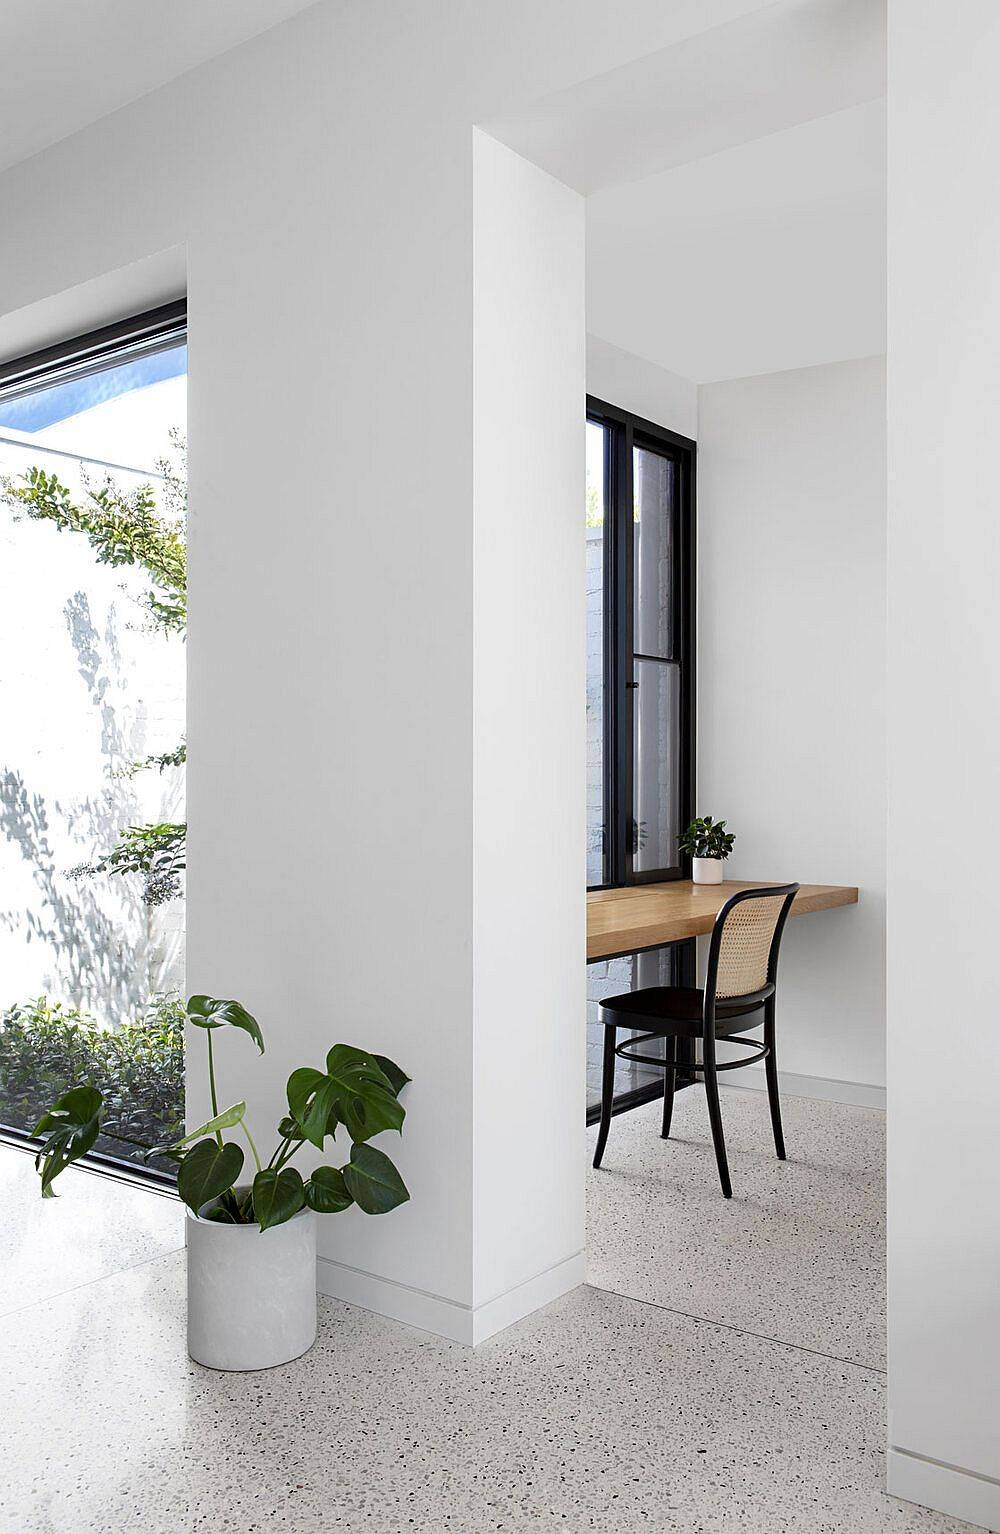 Slim-floating-wooden-desks-at-the-end-of-a-long-open-hallway-with-ample-natural-light-serve-as-workstations-23168